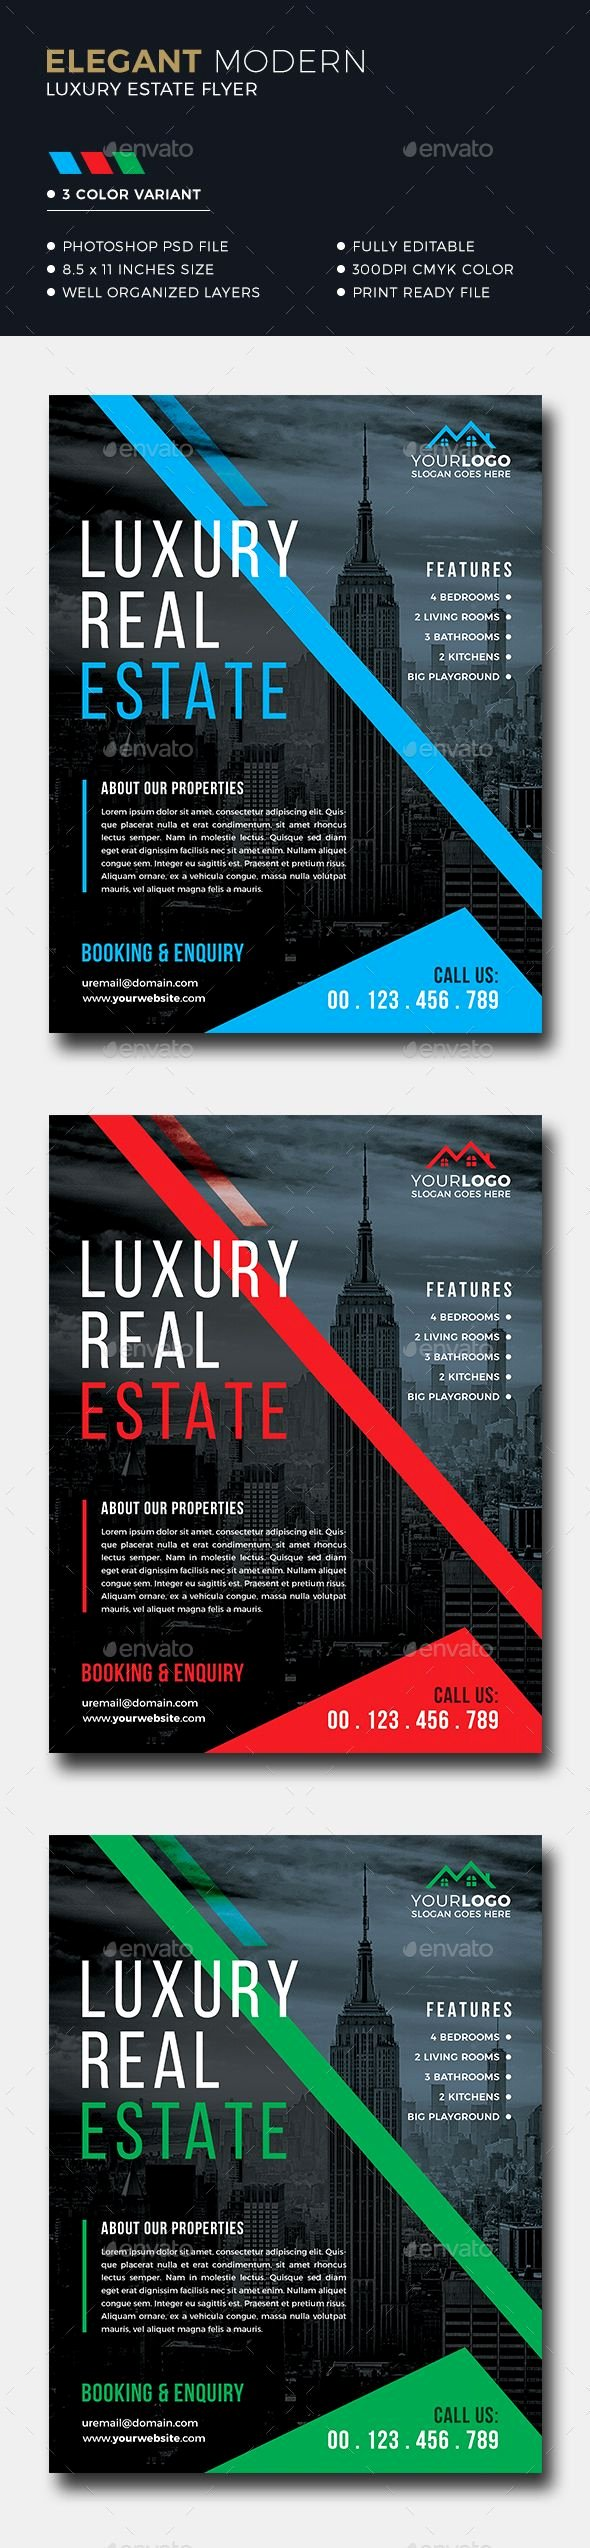 Real Estate Flyer Ideas New 25 Best Ideas About Real Estate Flyers On Pinterest